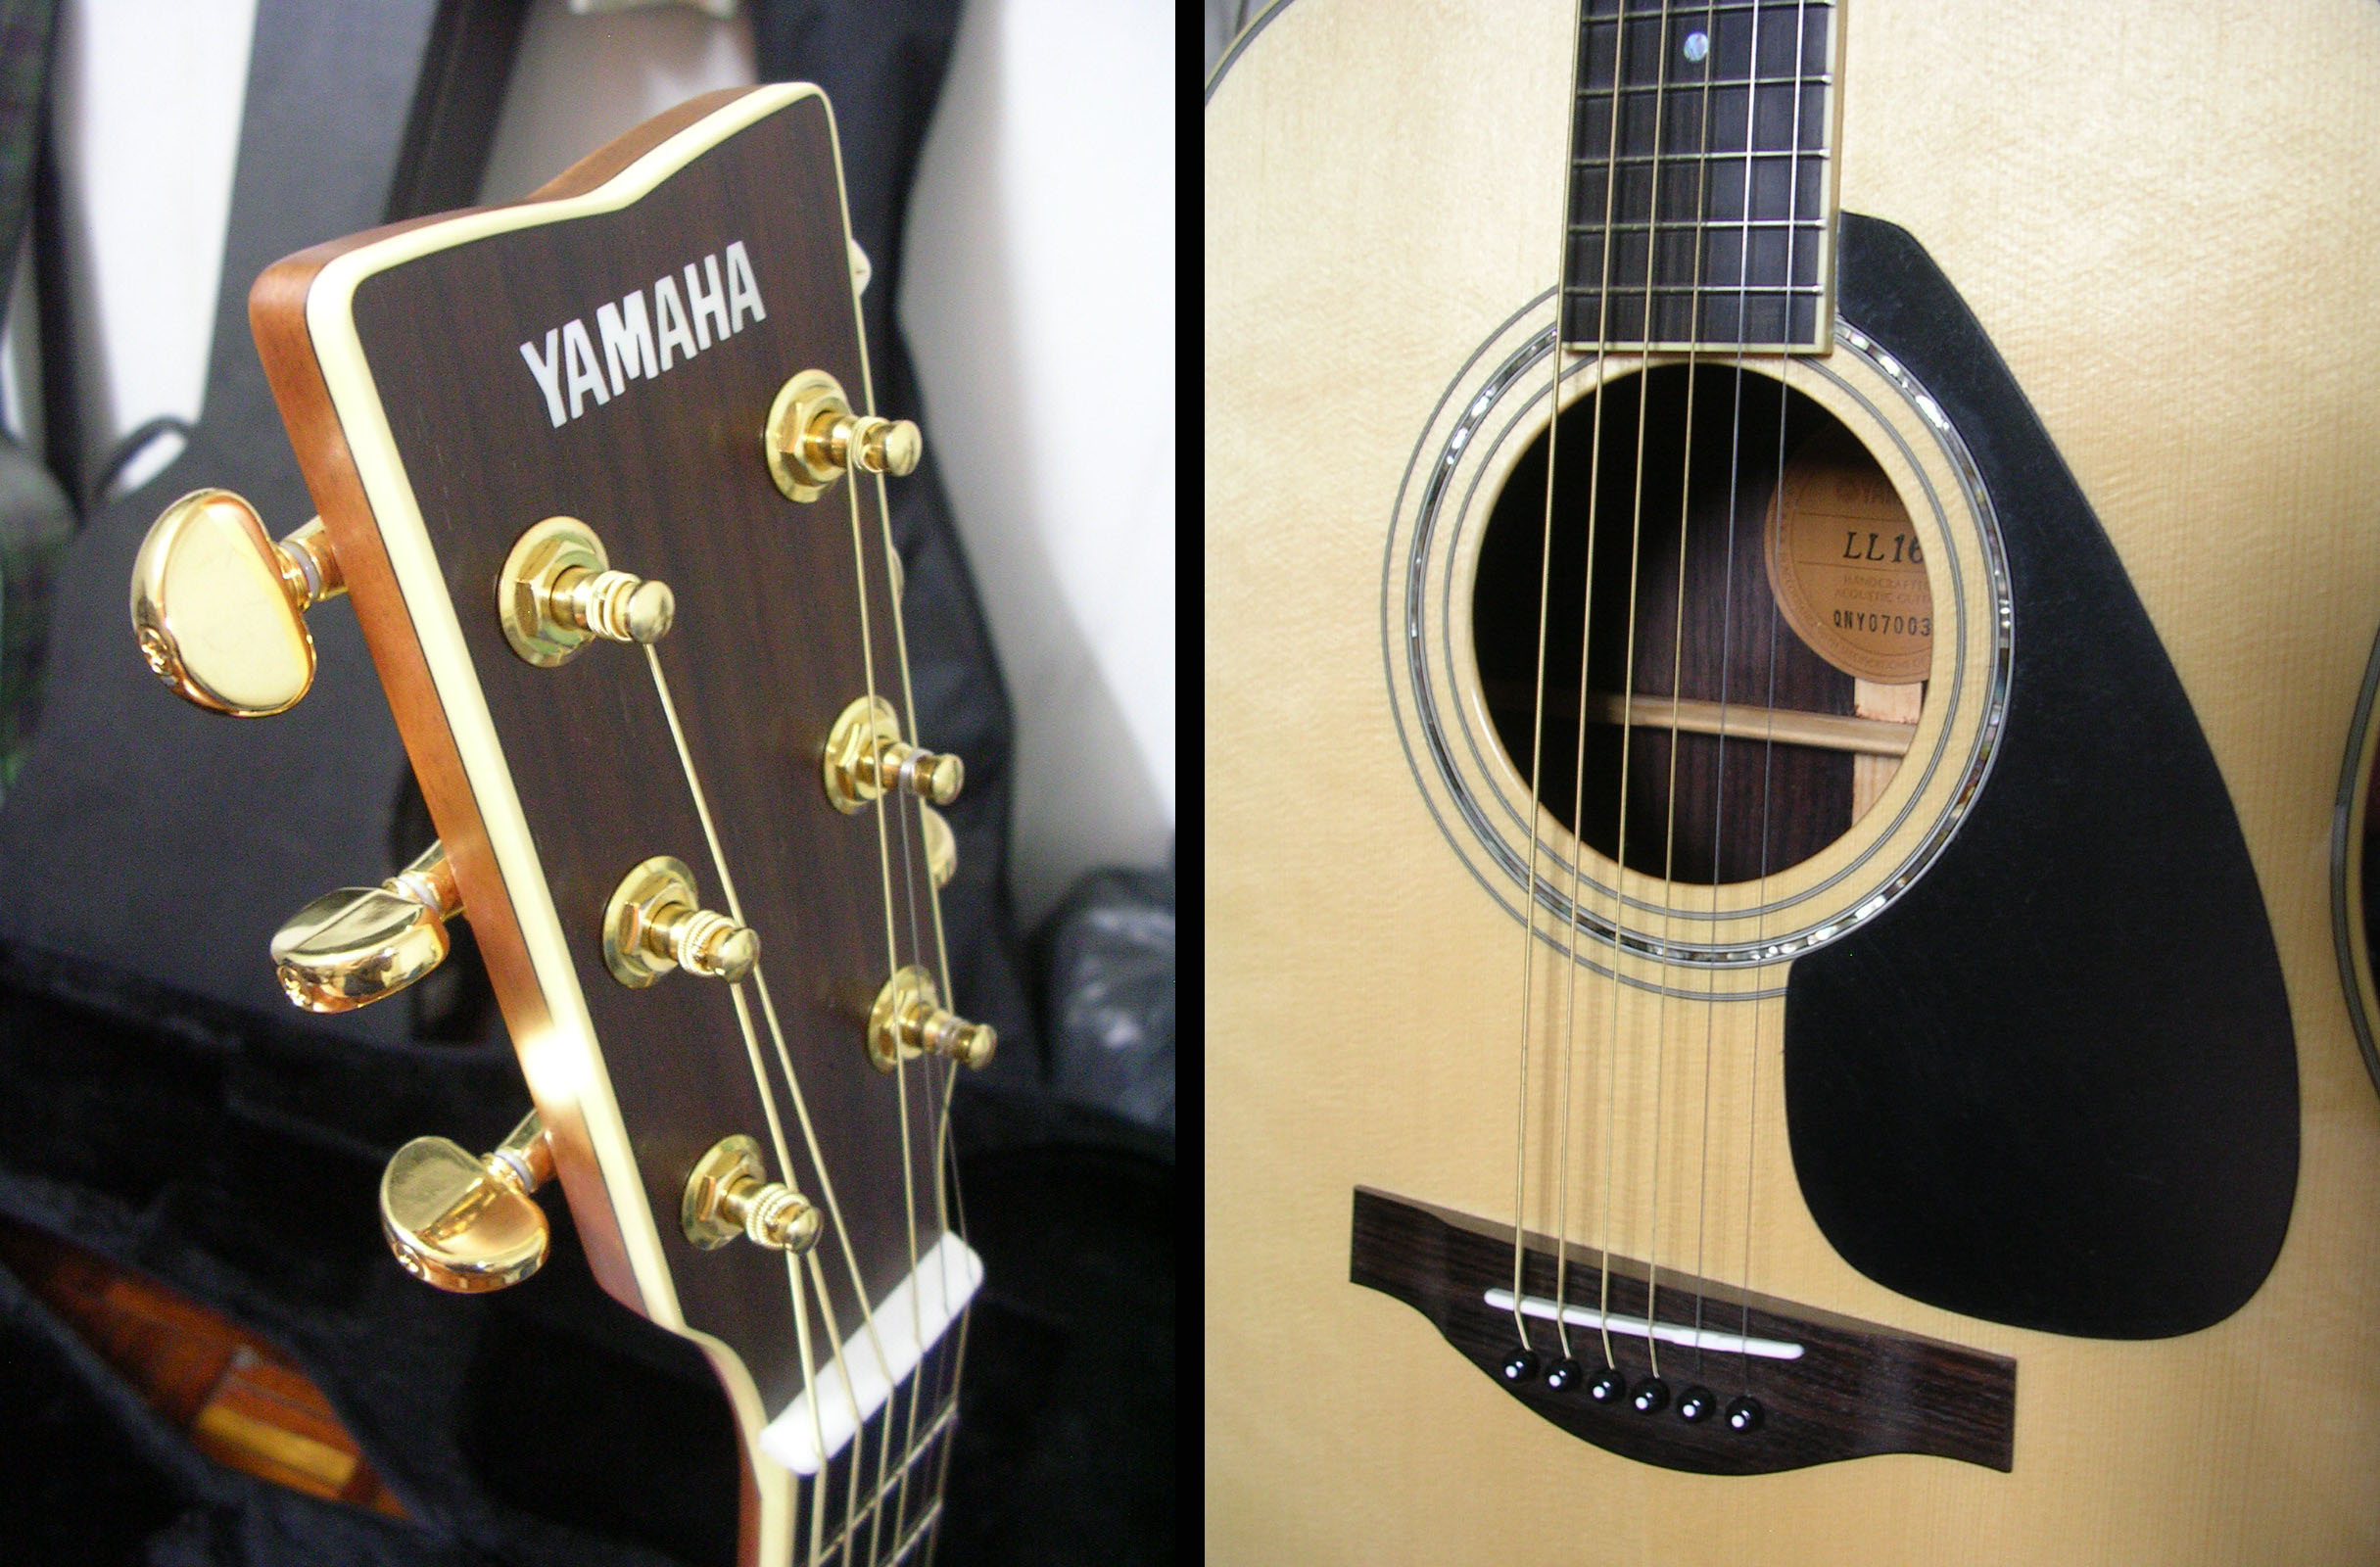 yamaha ll16. yamaha straight boxy butts at the end have been rounded off for l series. this guitar is noticeably a little heavier when compared to my old f340. ll16